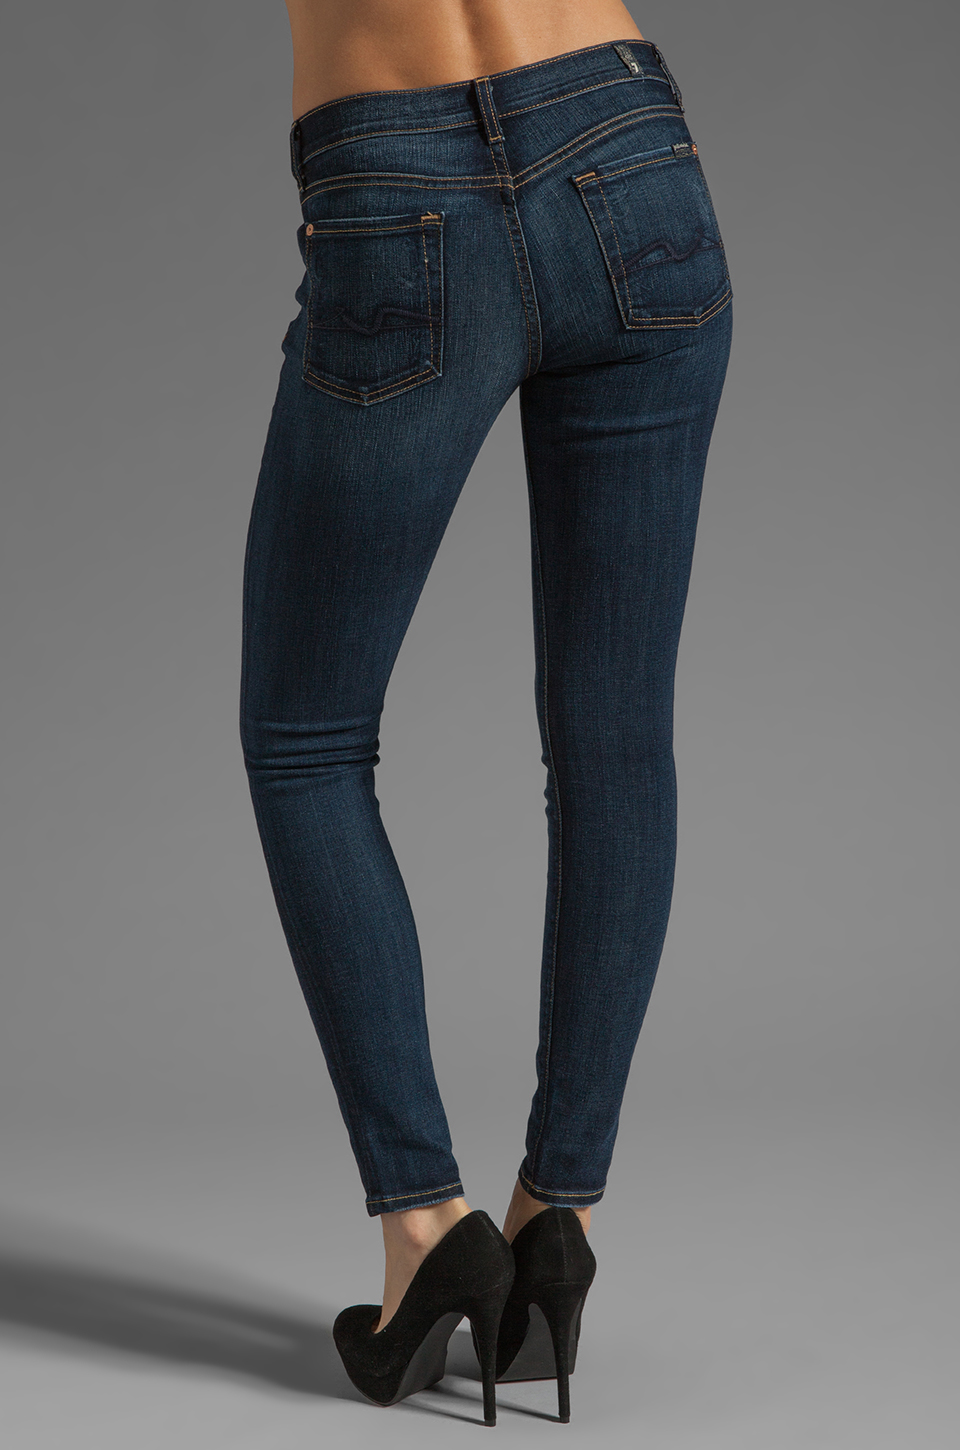 7 For All Mankind The Skinny with Squiggle in Genuine Dark Blue